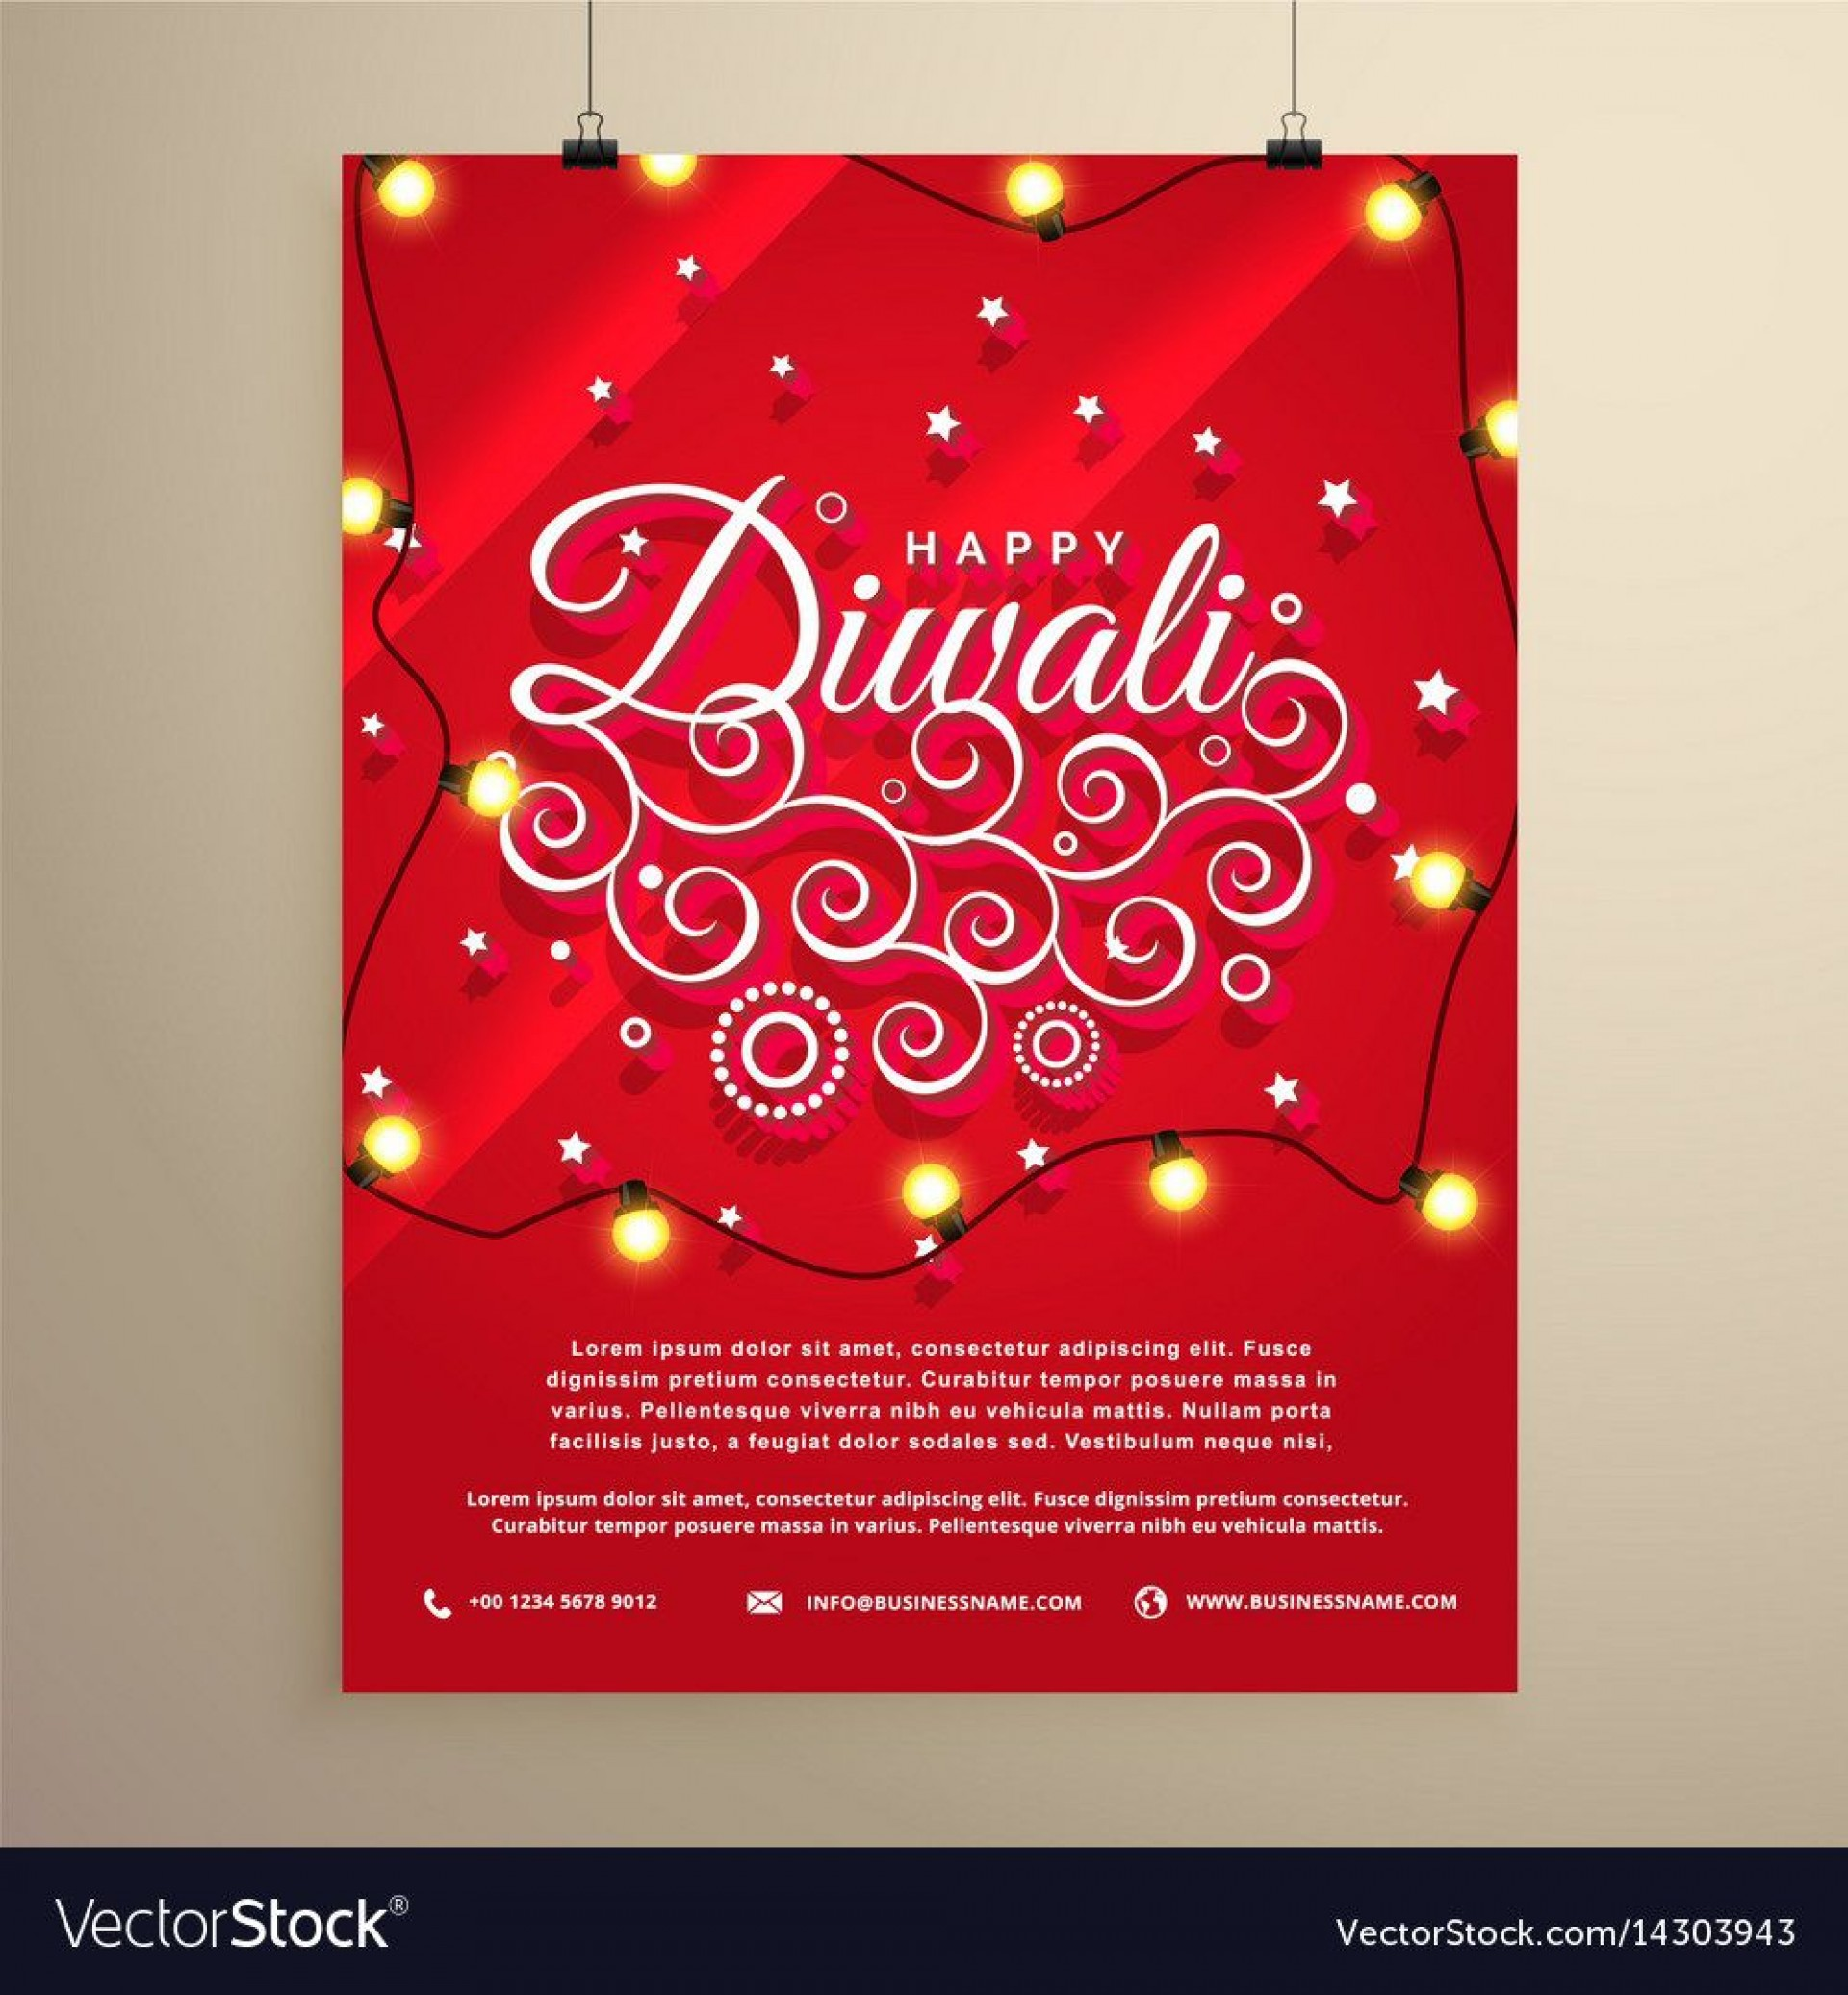 005 Unforgettable Diwali Party Invite Template Free Highest Quality 1920